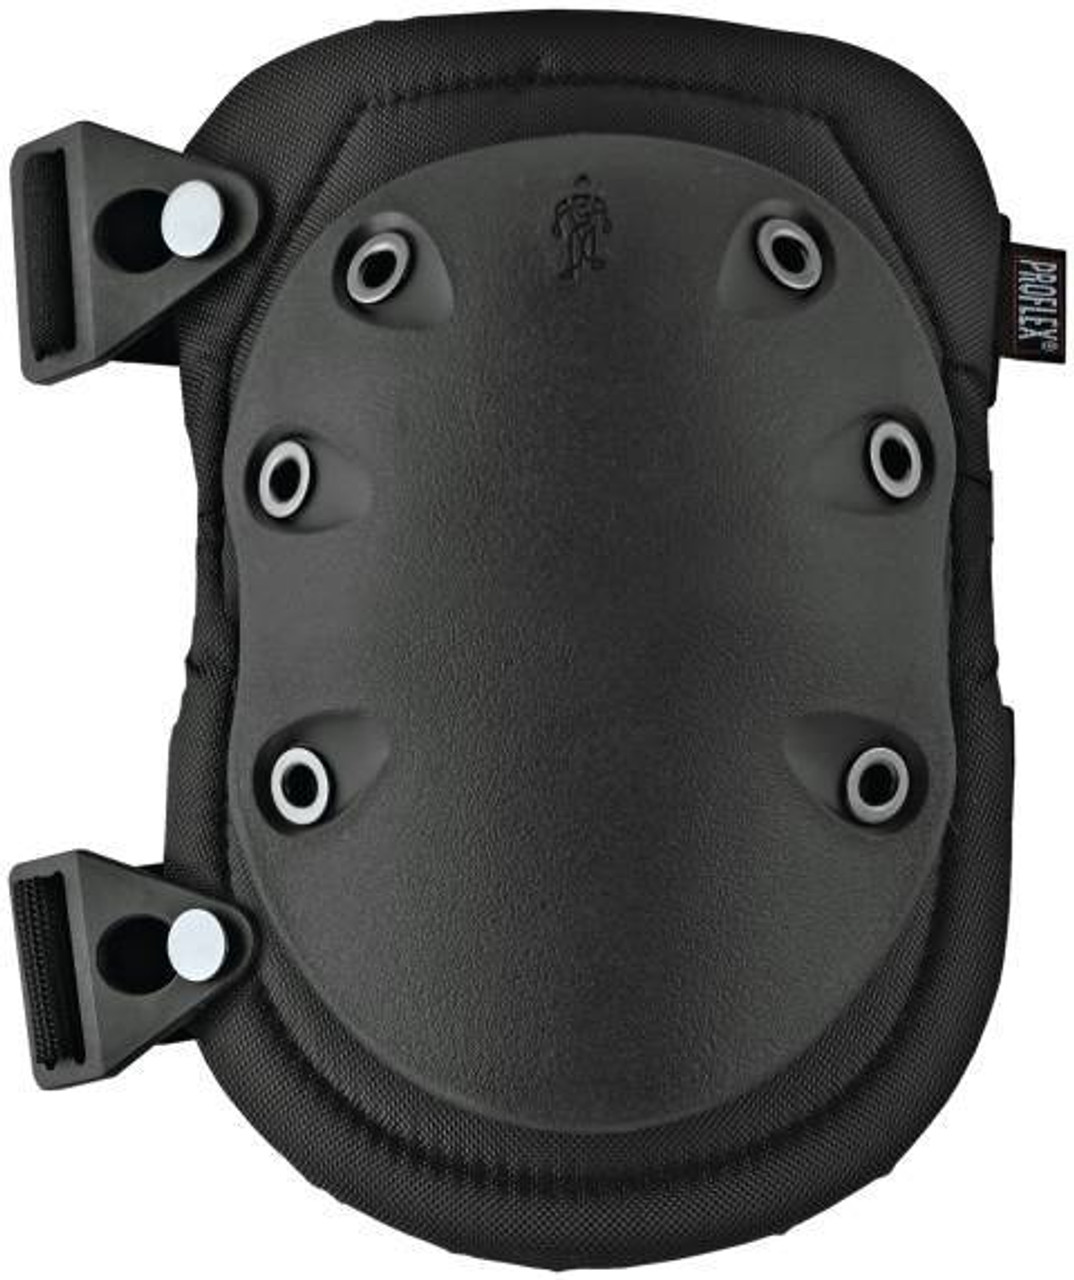 Knee Supports/Pads